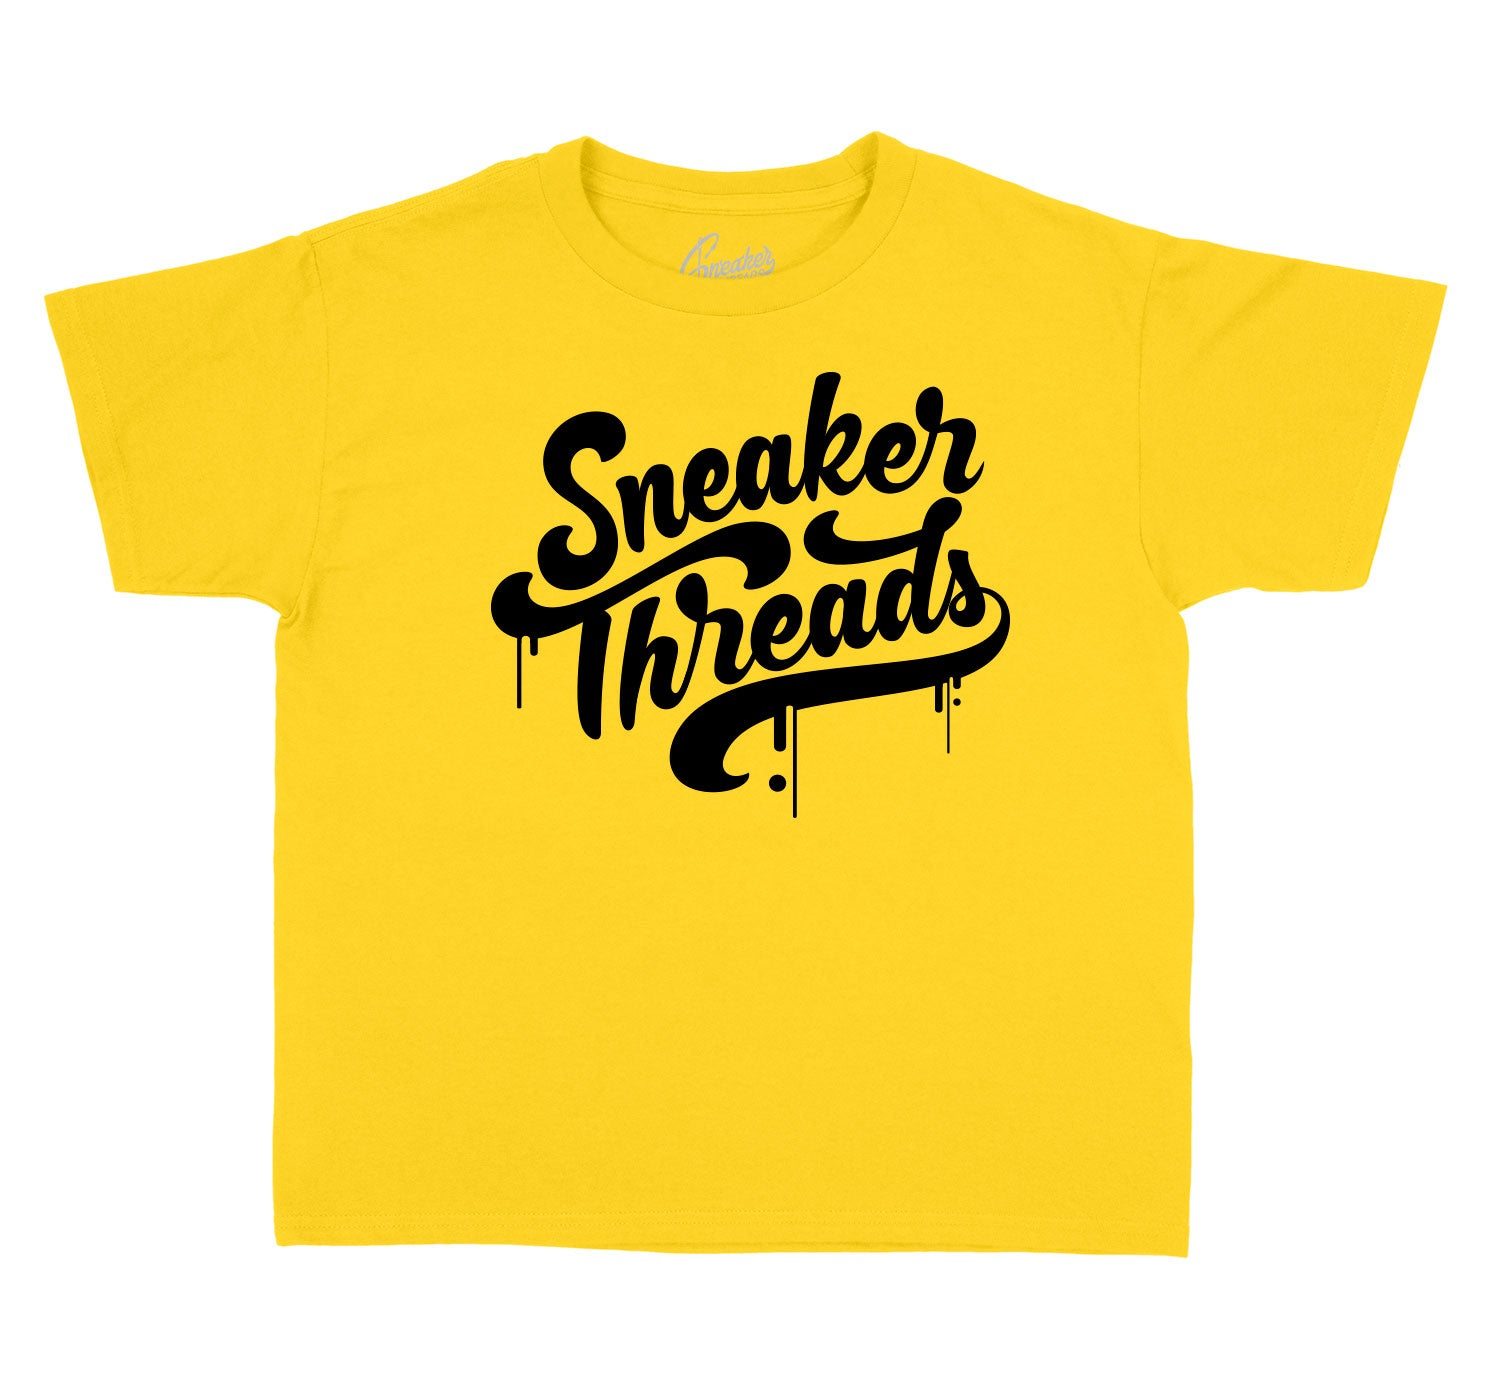 University Gold Jordan12 sneaker collection matching with mens t shirt collection